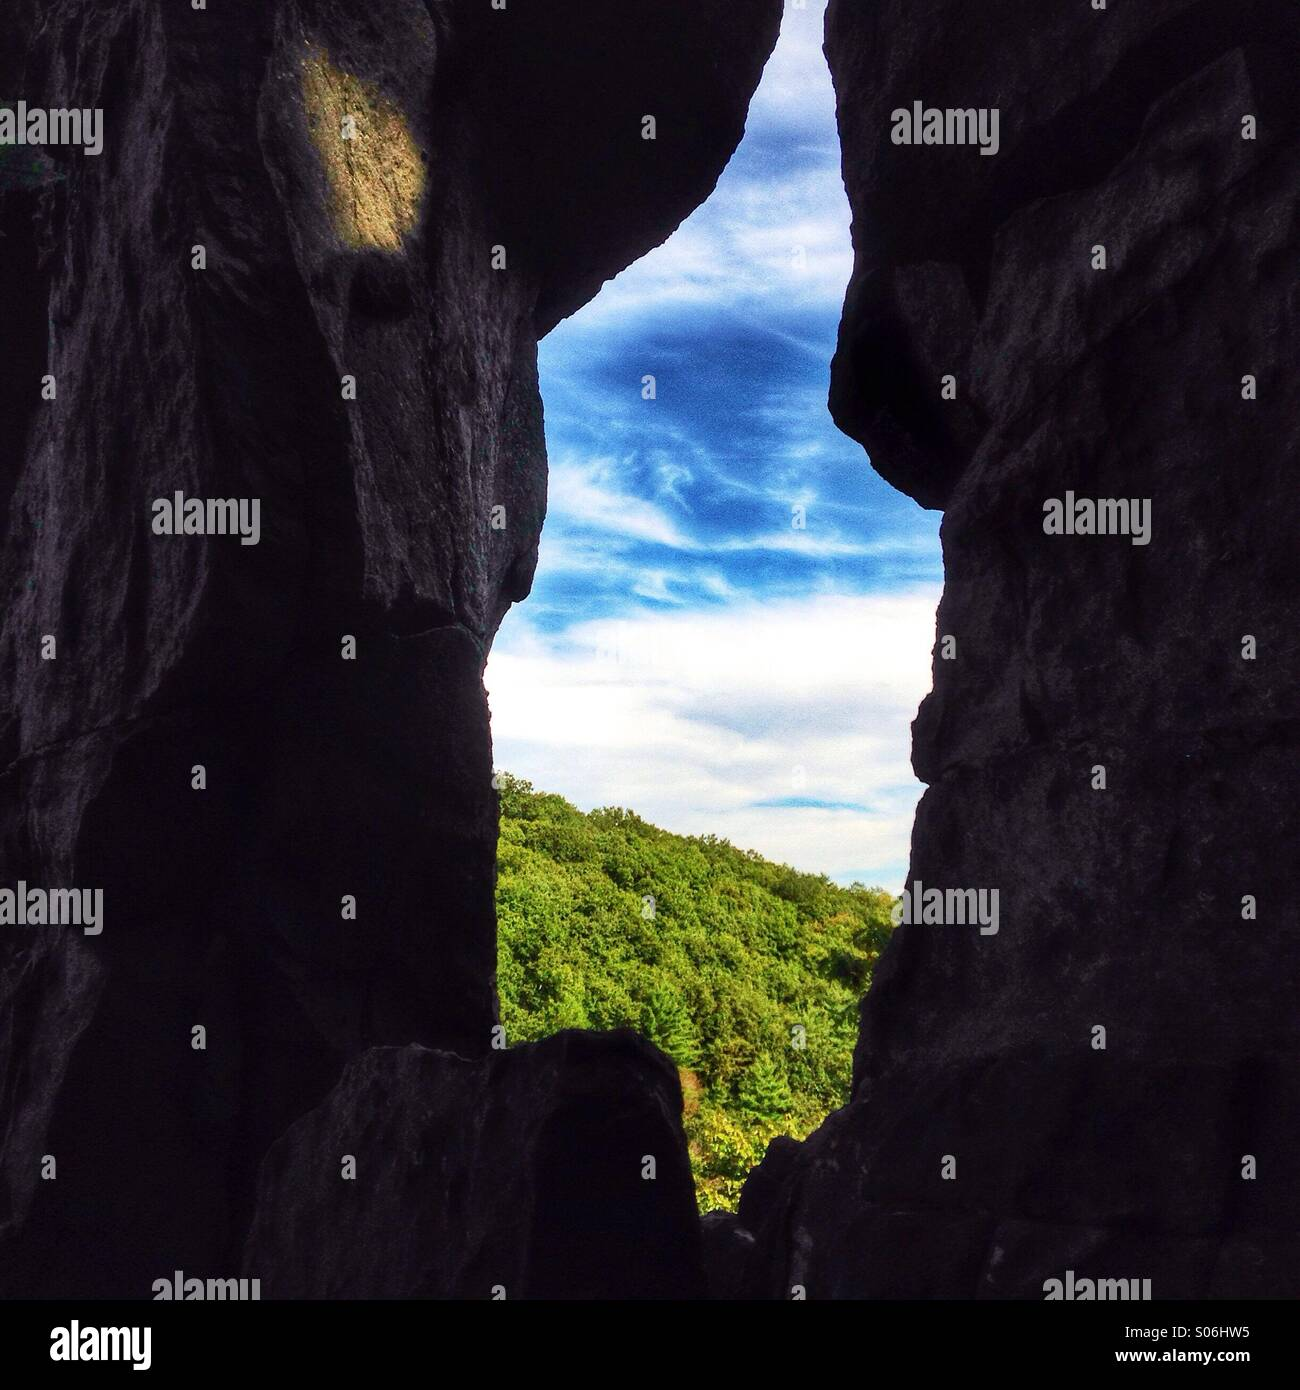 A craggy aperture at Rock State Park, Maryland. - Stock Image